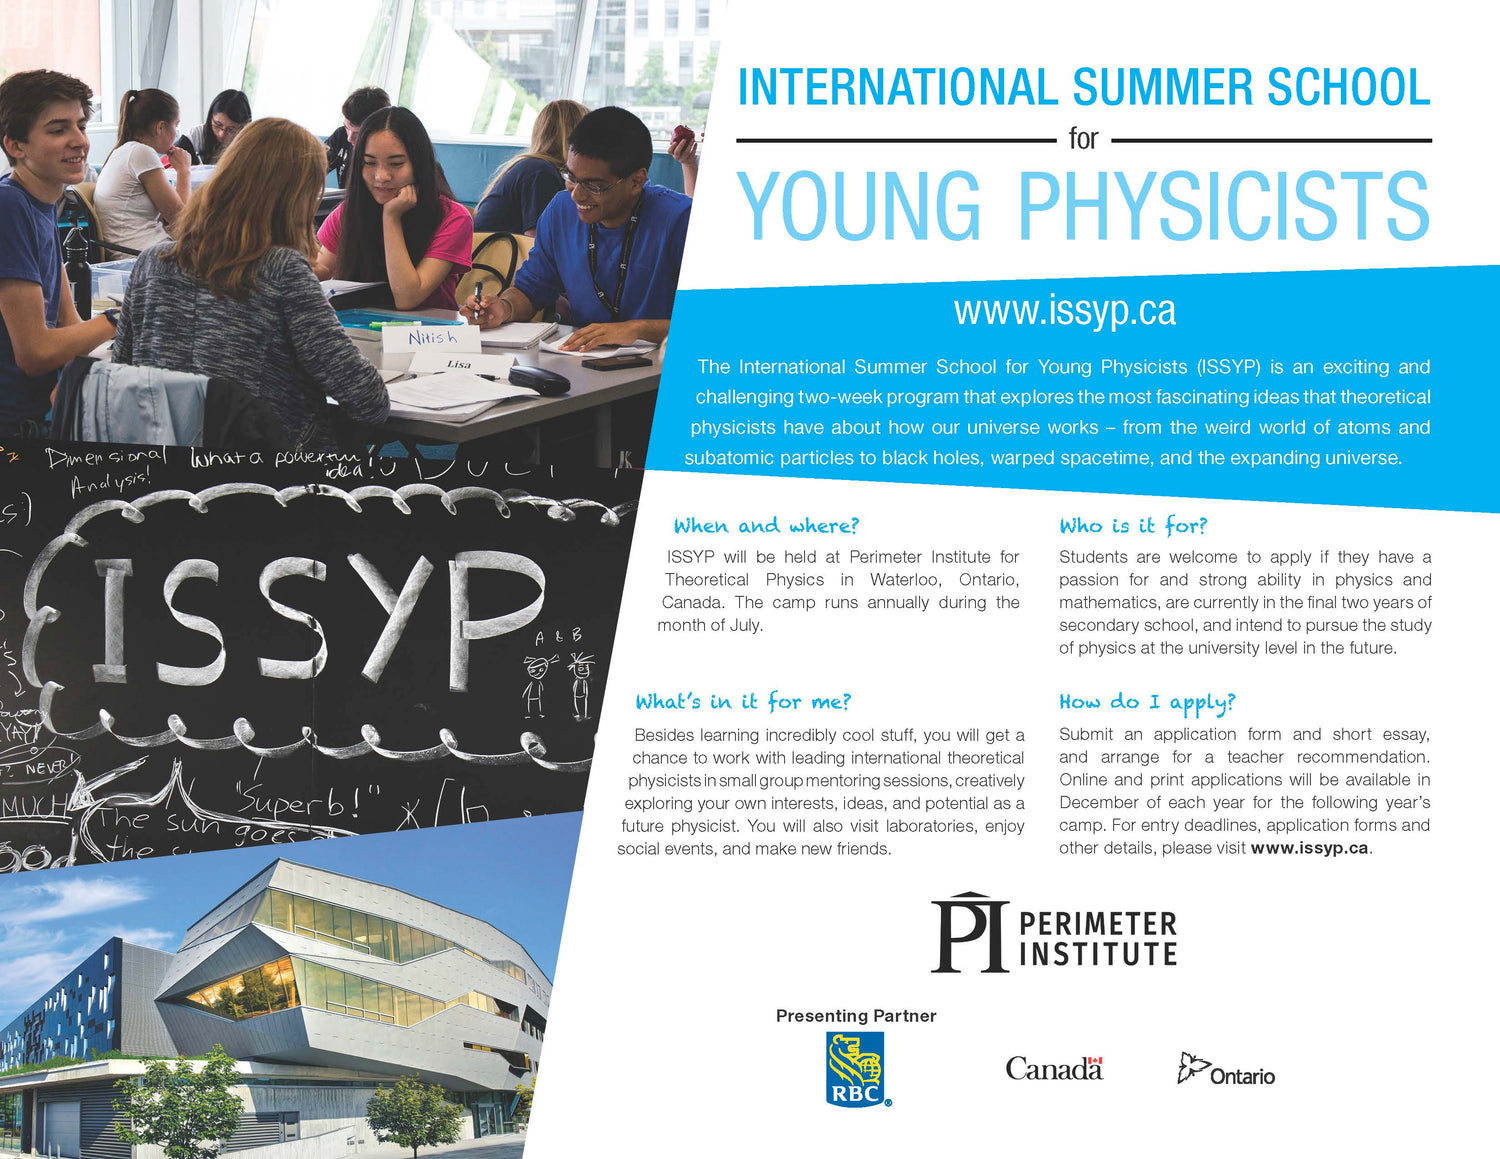 International Summer School for Young Physicists (ISSYP)